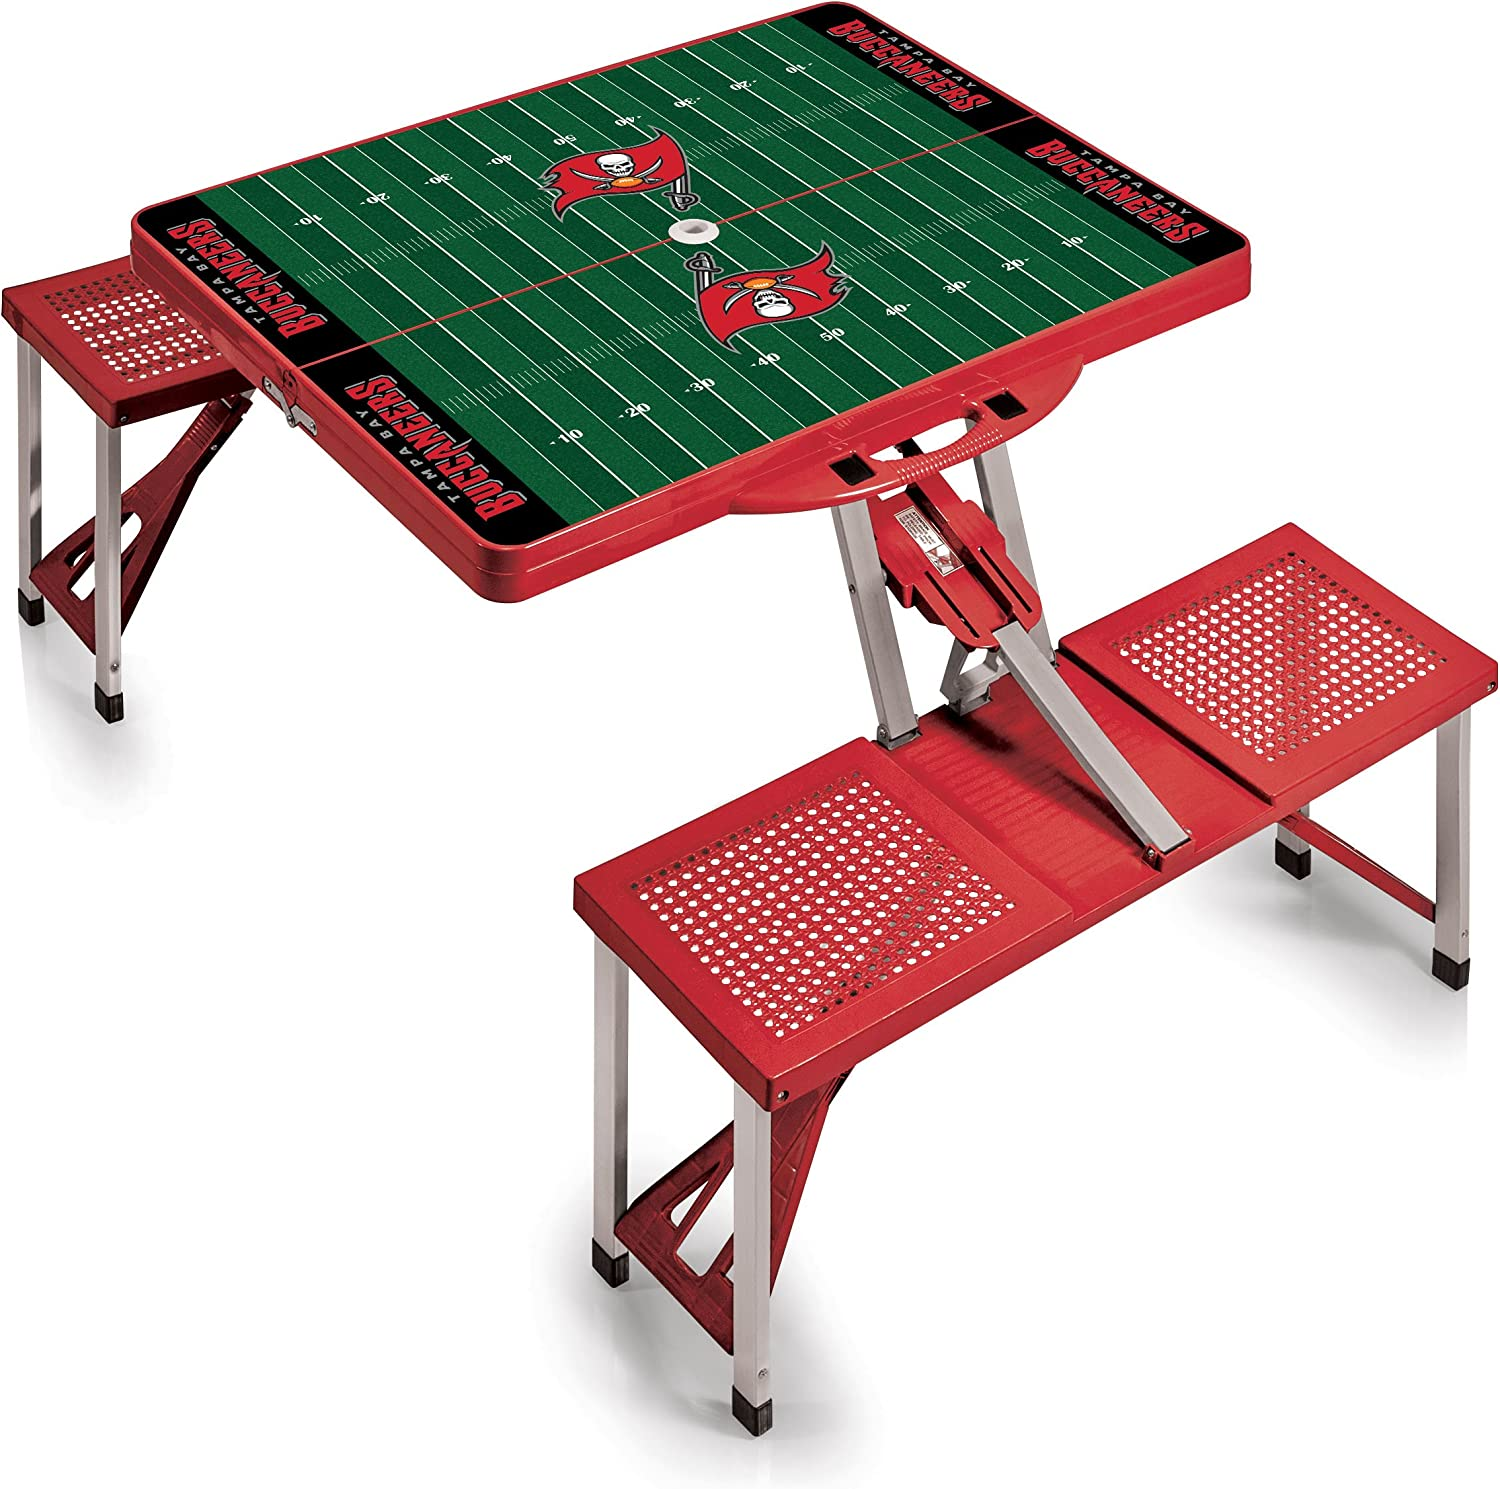 NFL Tampa Bay Buccaneers Football Field Design Portable Folding Table/Seats, Red